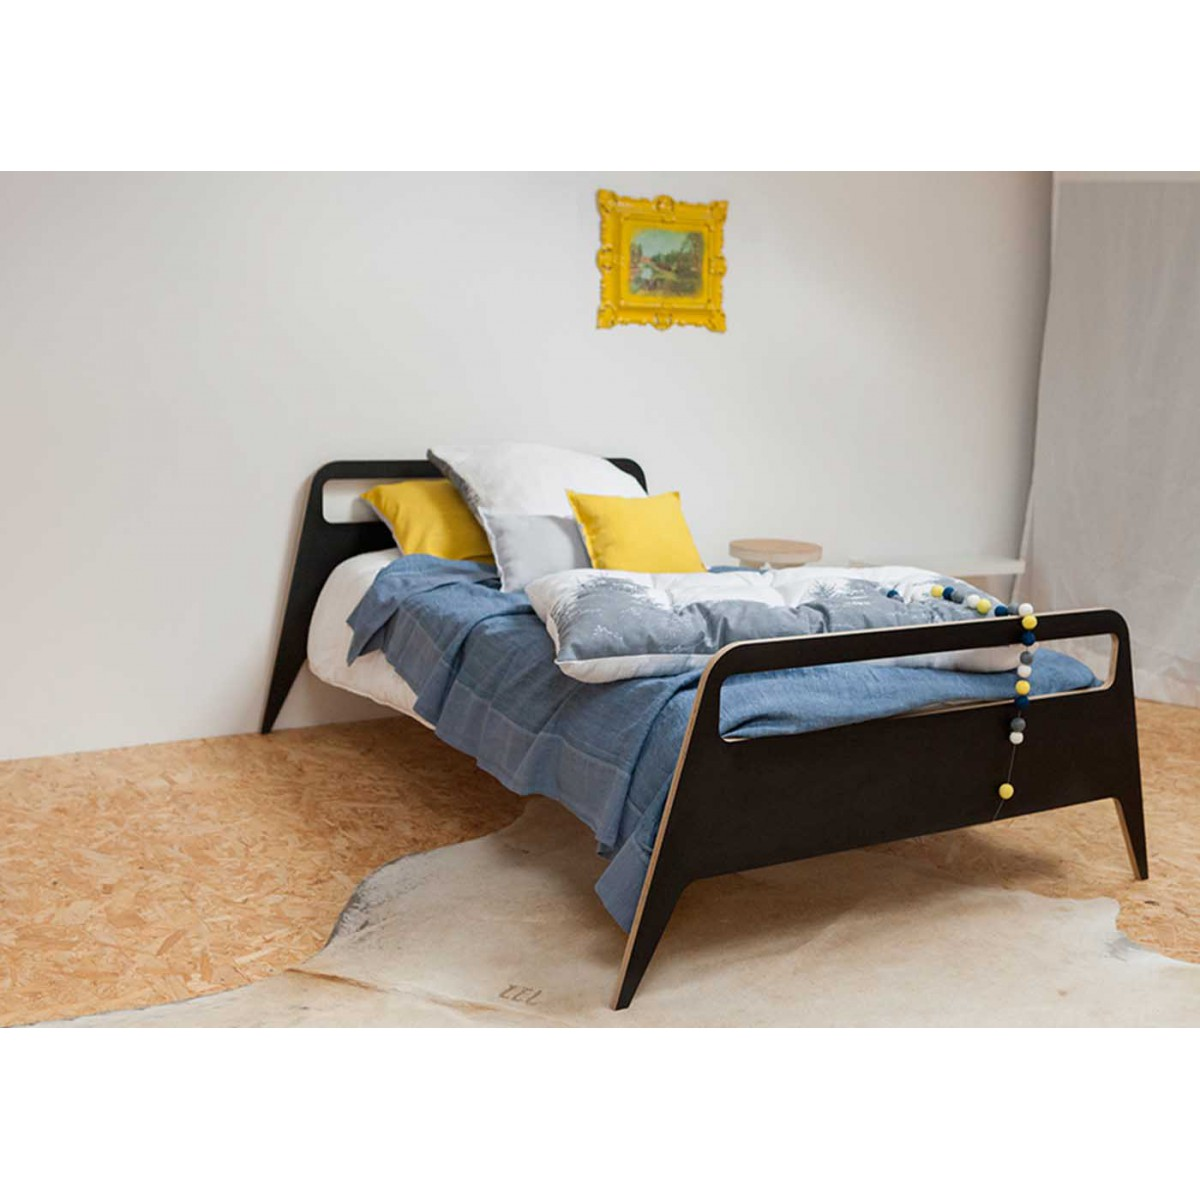 Lit moderne 1 ou 2 places travel par blomkal - Lit enfant 1 place ...